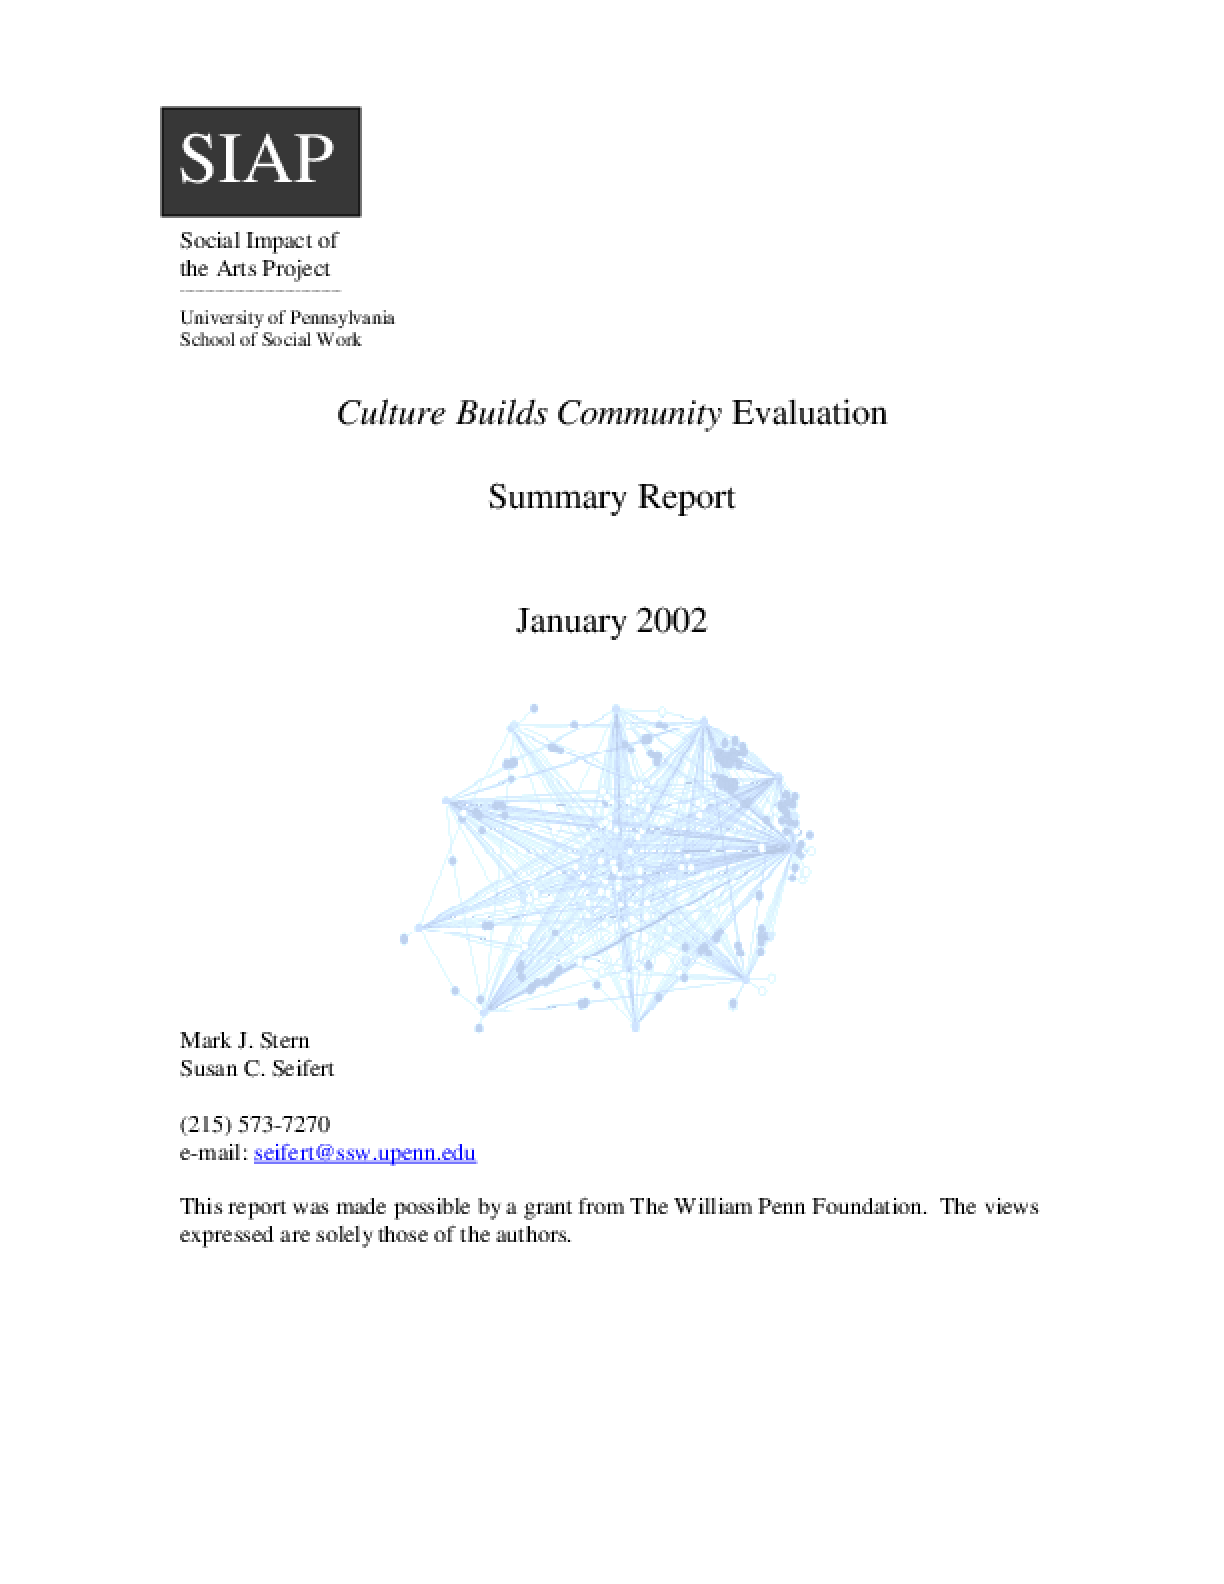 Culture Builds Communities, Evaluation: Summary Report